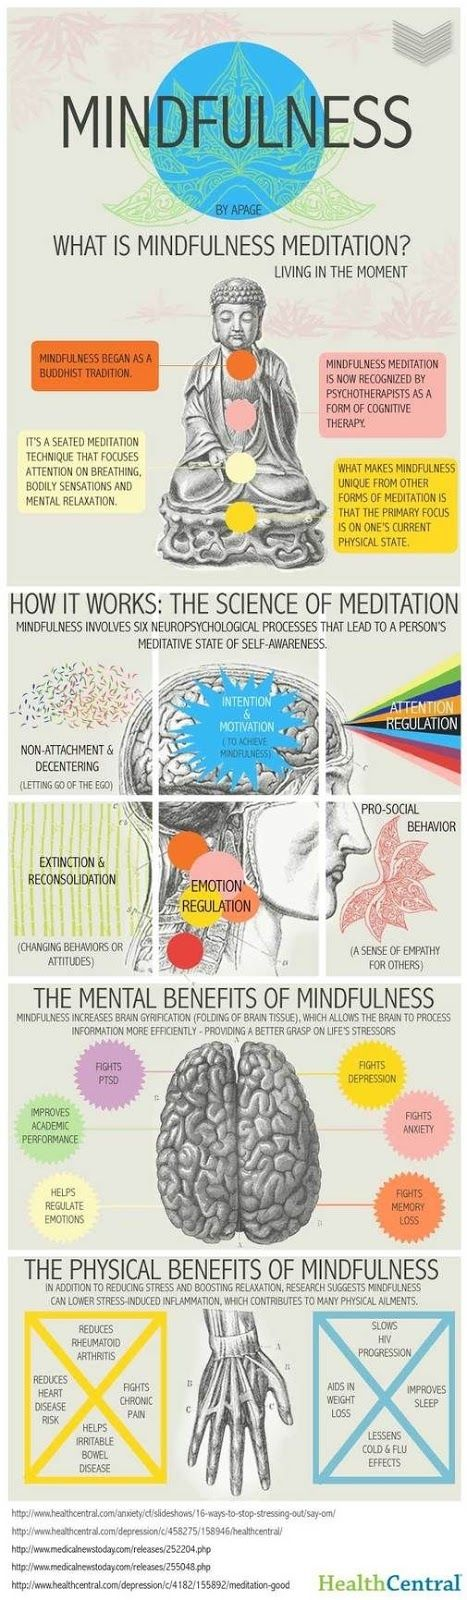 Infographic: What is Mindfulness Meditation? .... You're supposed to meditate at the beginning and end of each yoga class too.